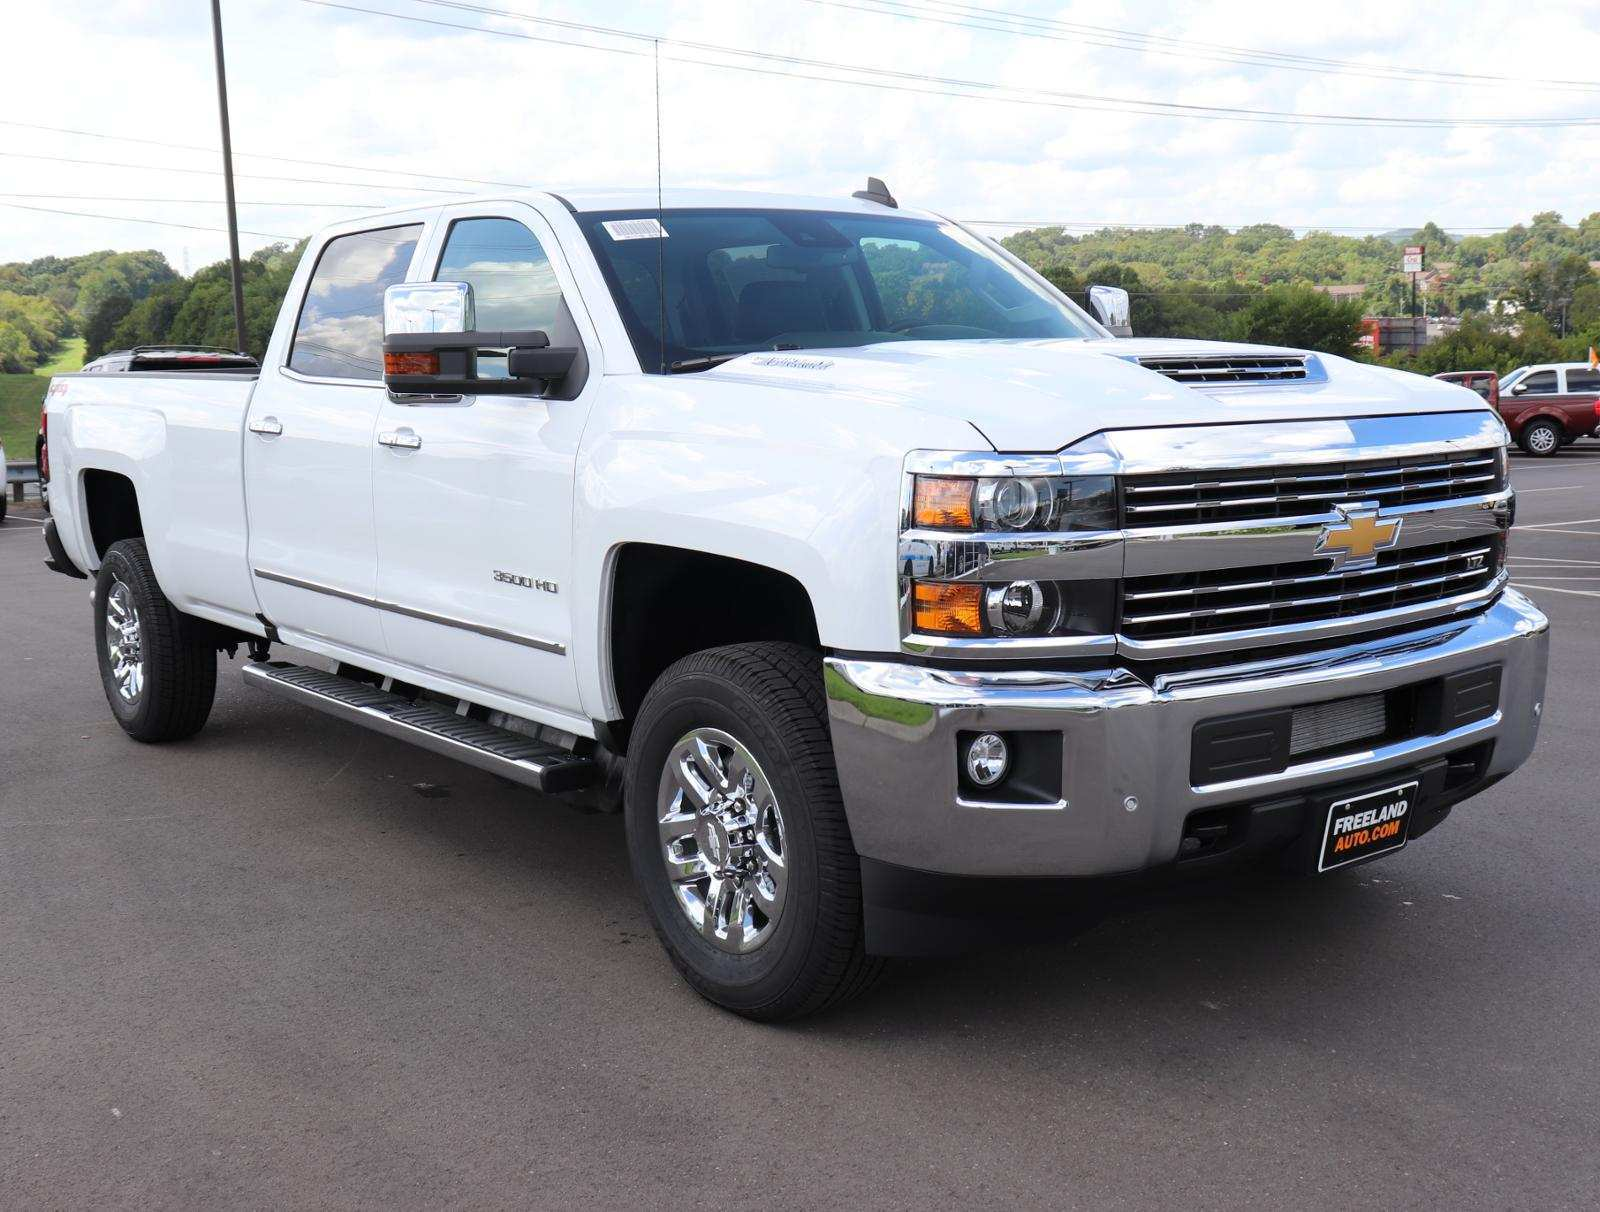 32 All New 2019 Chevrolet 3500 New Concept for 2019 Chevrolet 3500